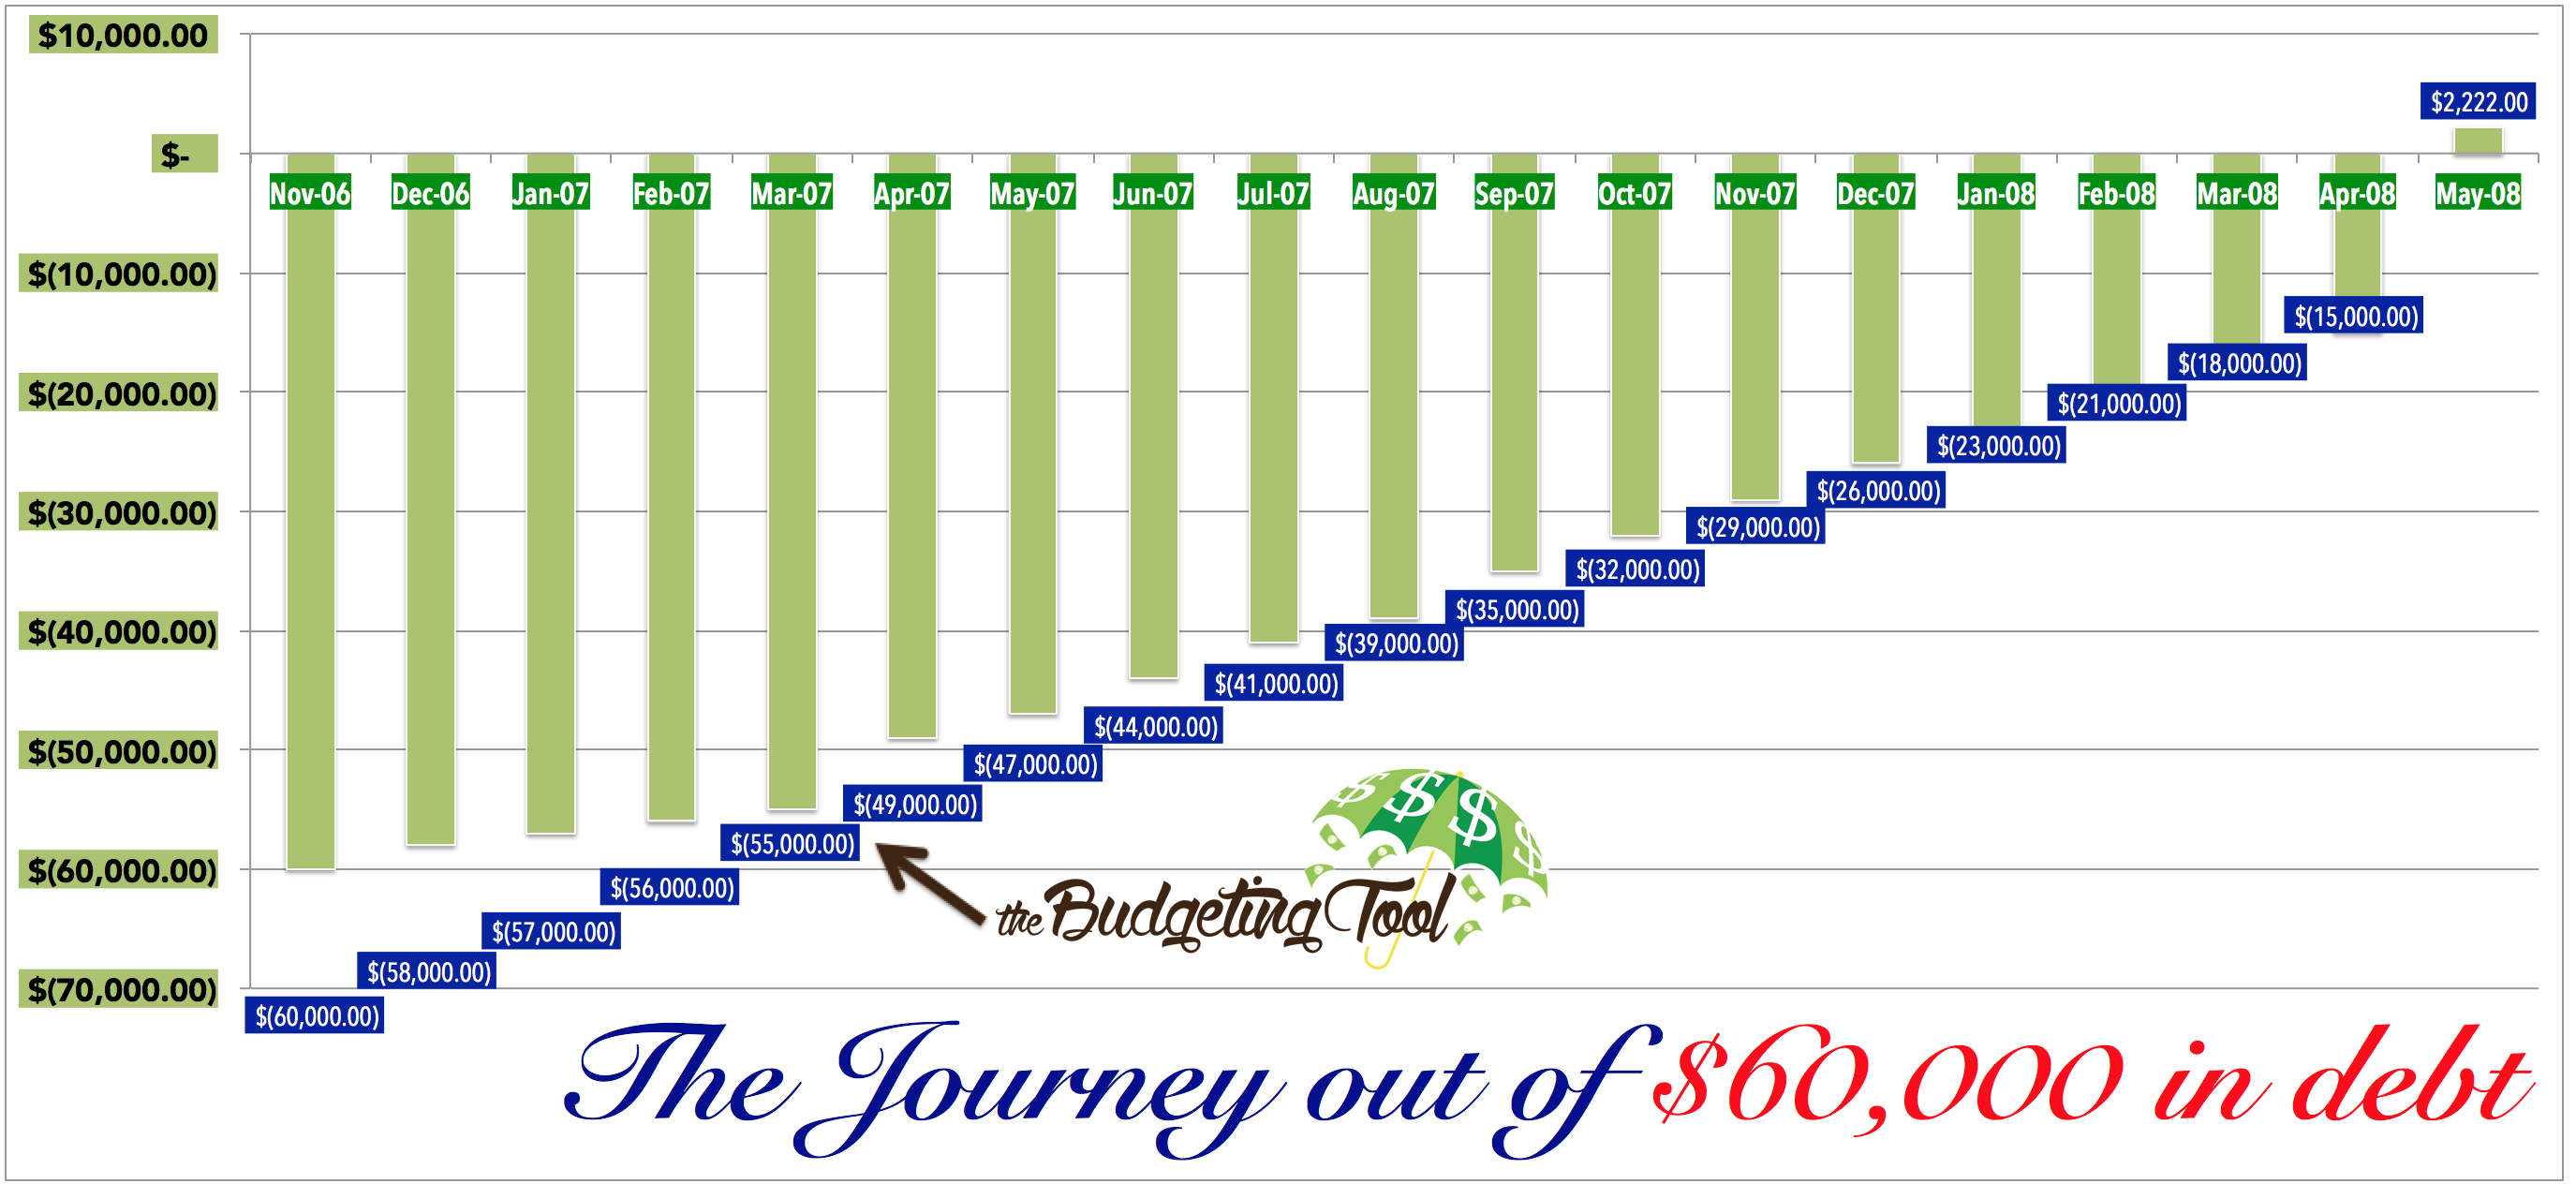 the-budgeting-tool-get-out-of-debt-chart-60000-climb-in-18-months